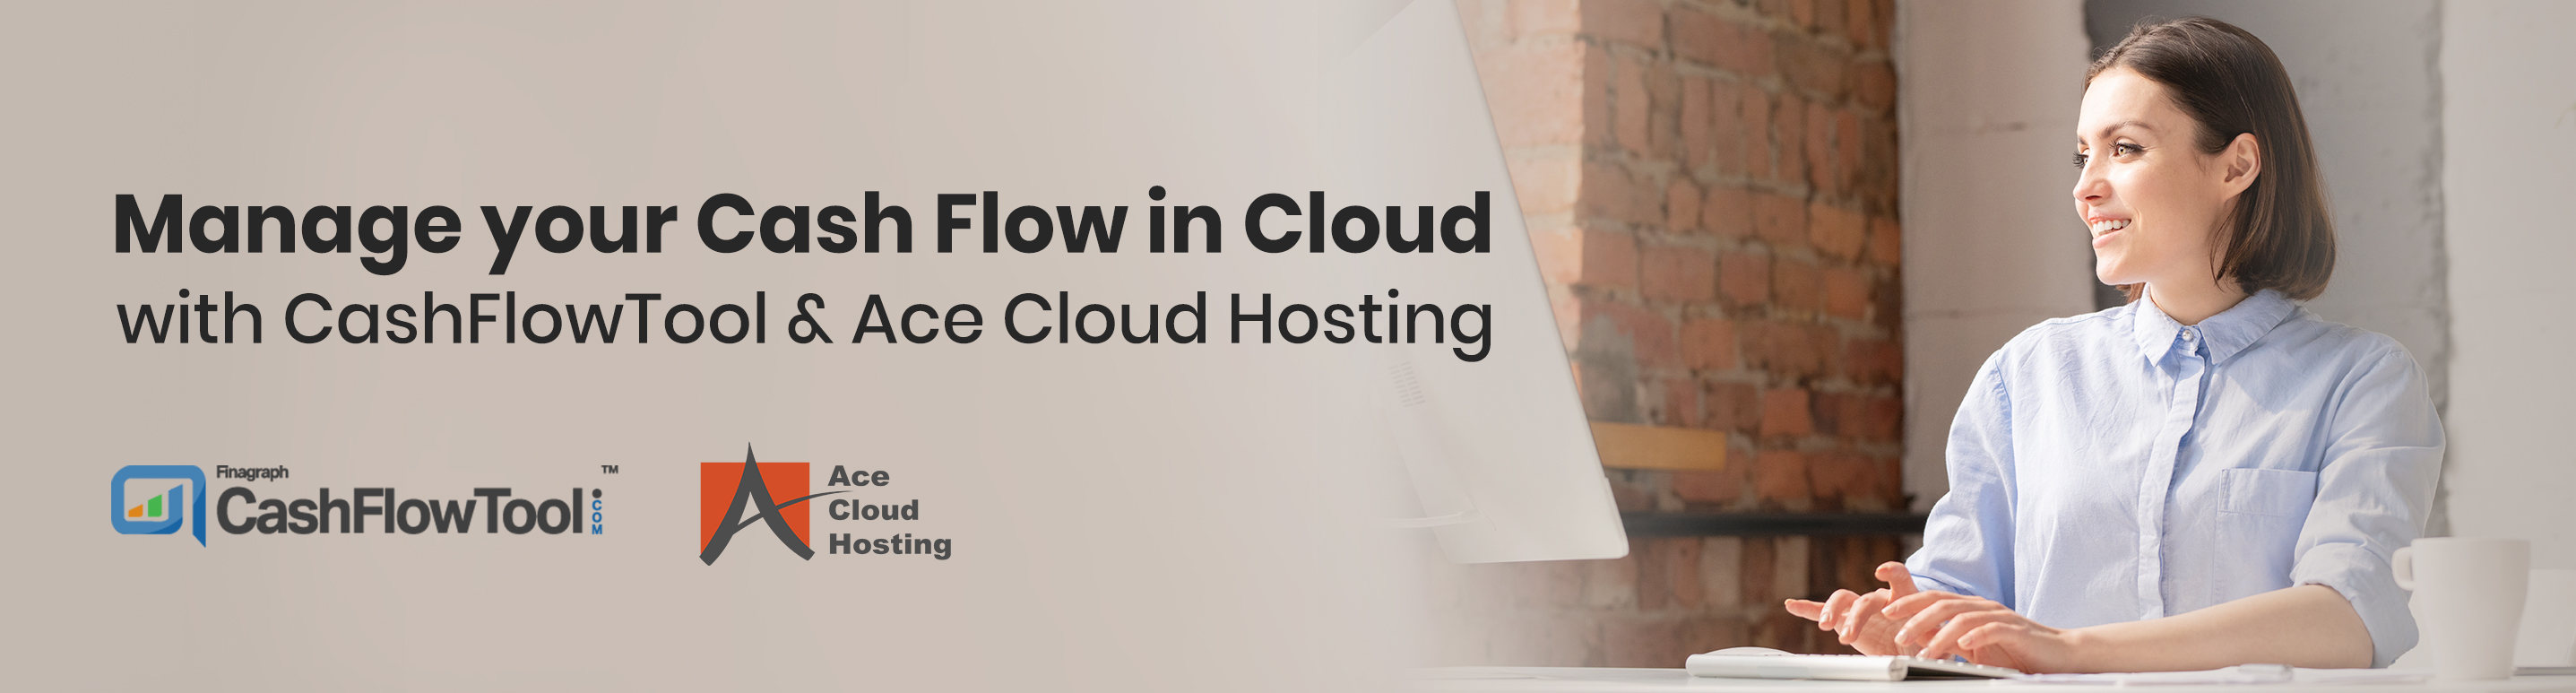 Banner: Manage your Cash Flow in Cloud with CashFlowTool and Ace Cloud Hosting